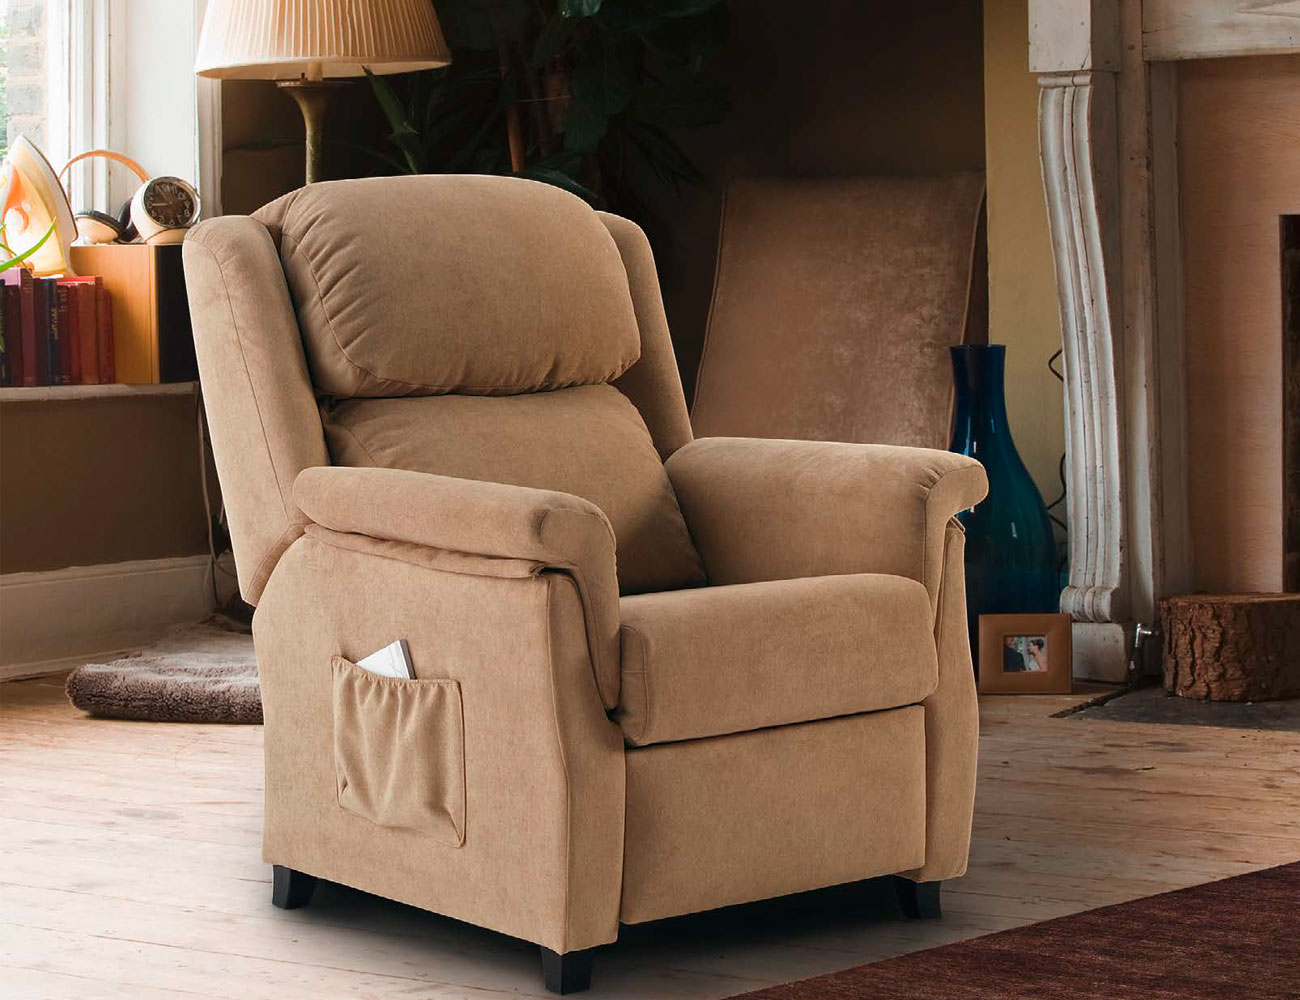 Sillon relax manual bianca 11